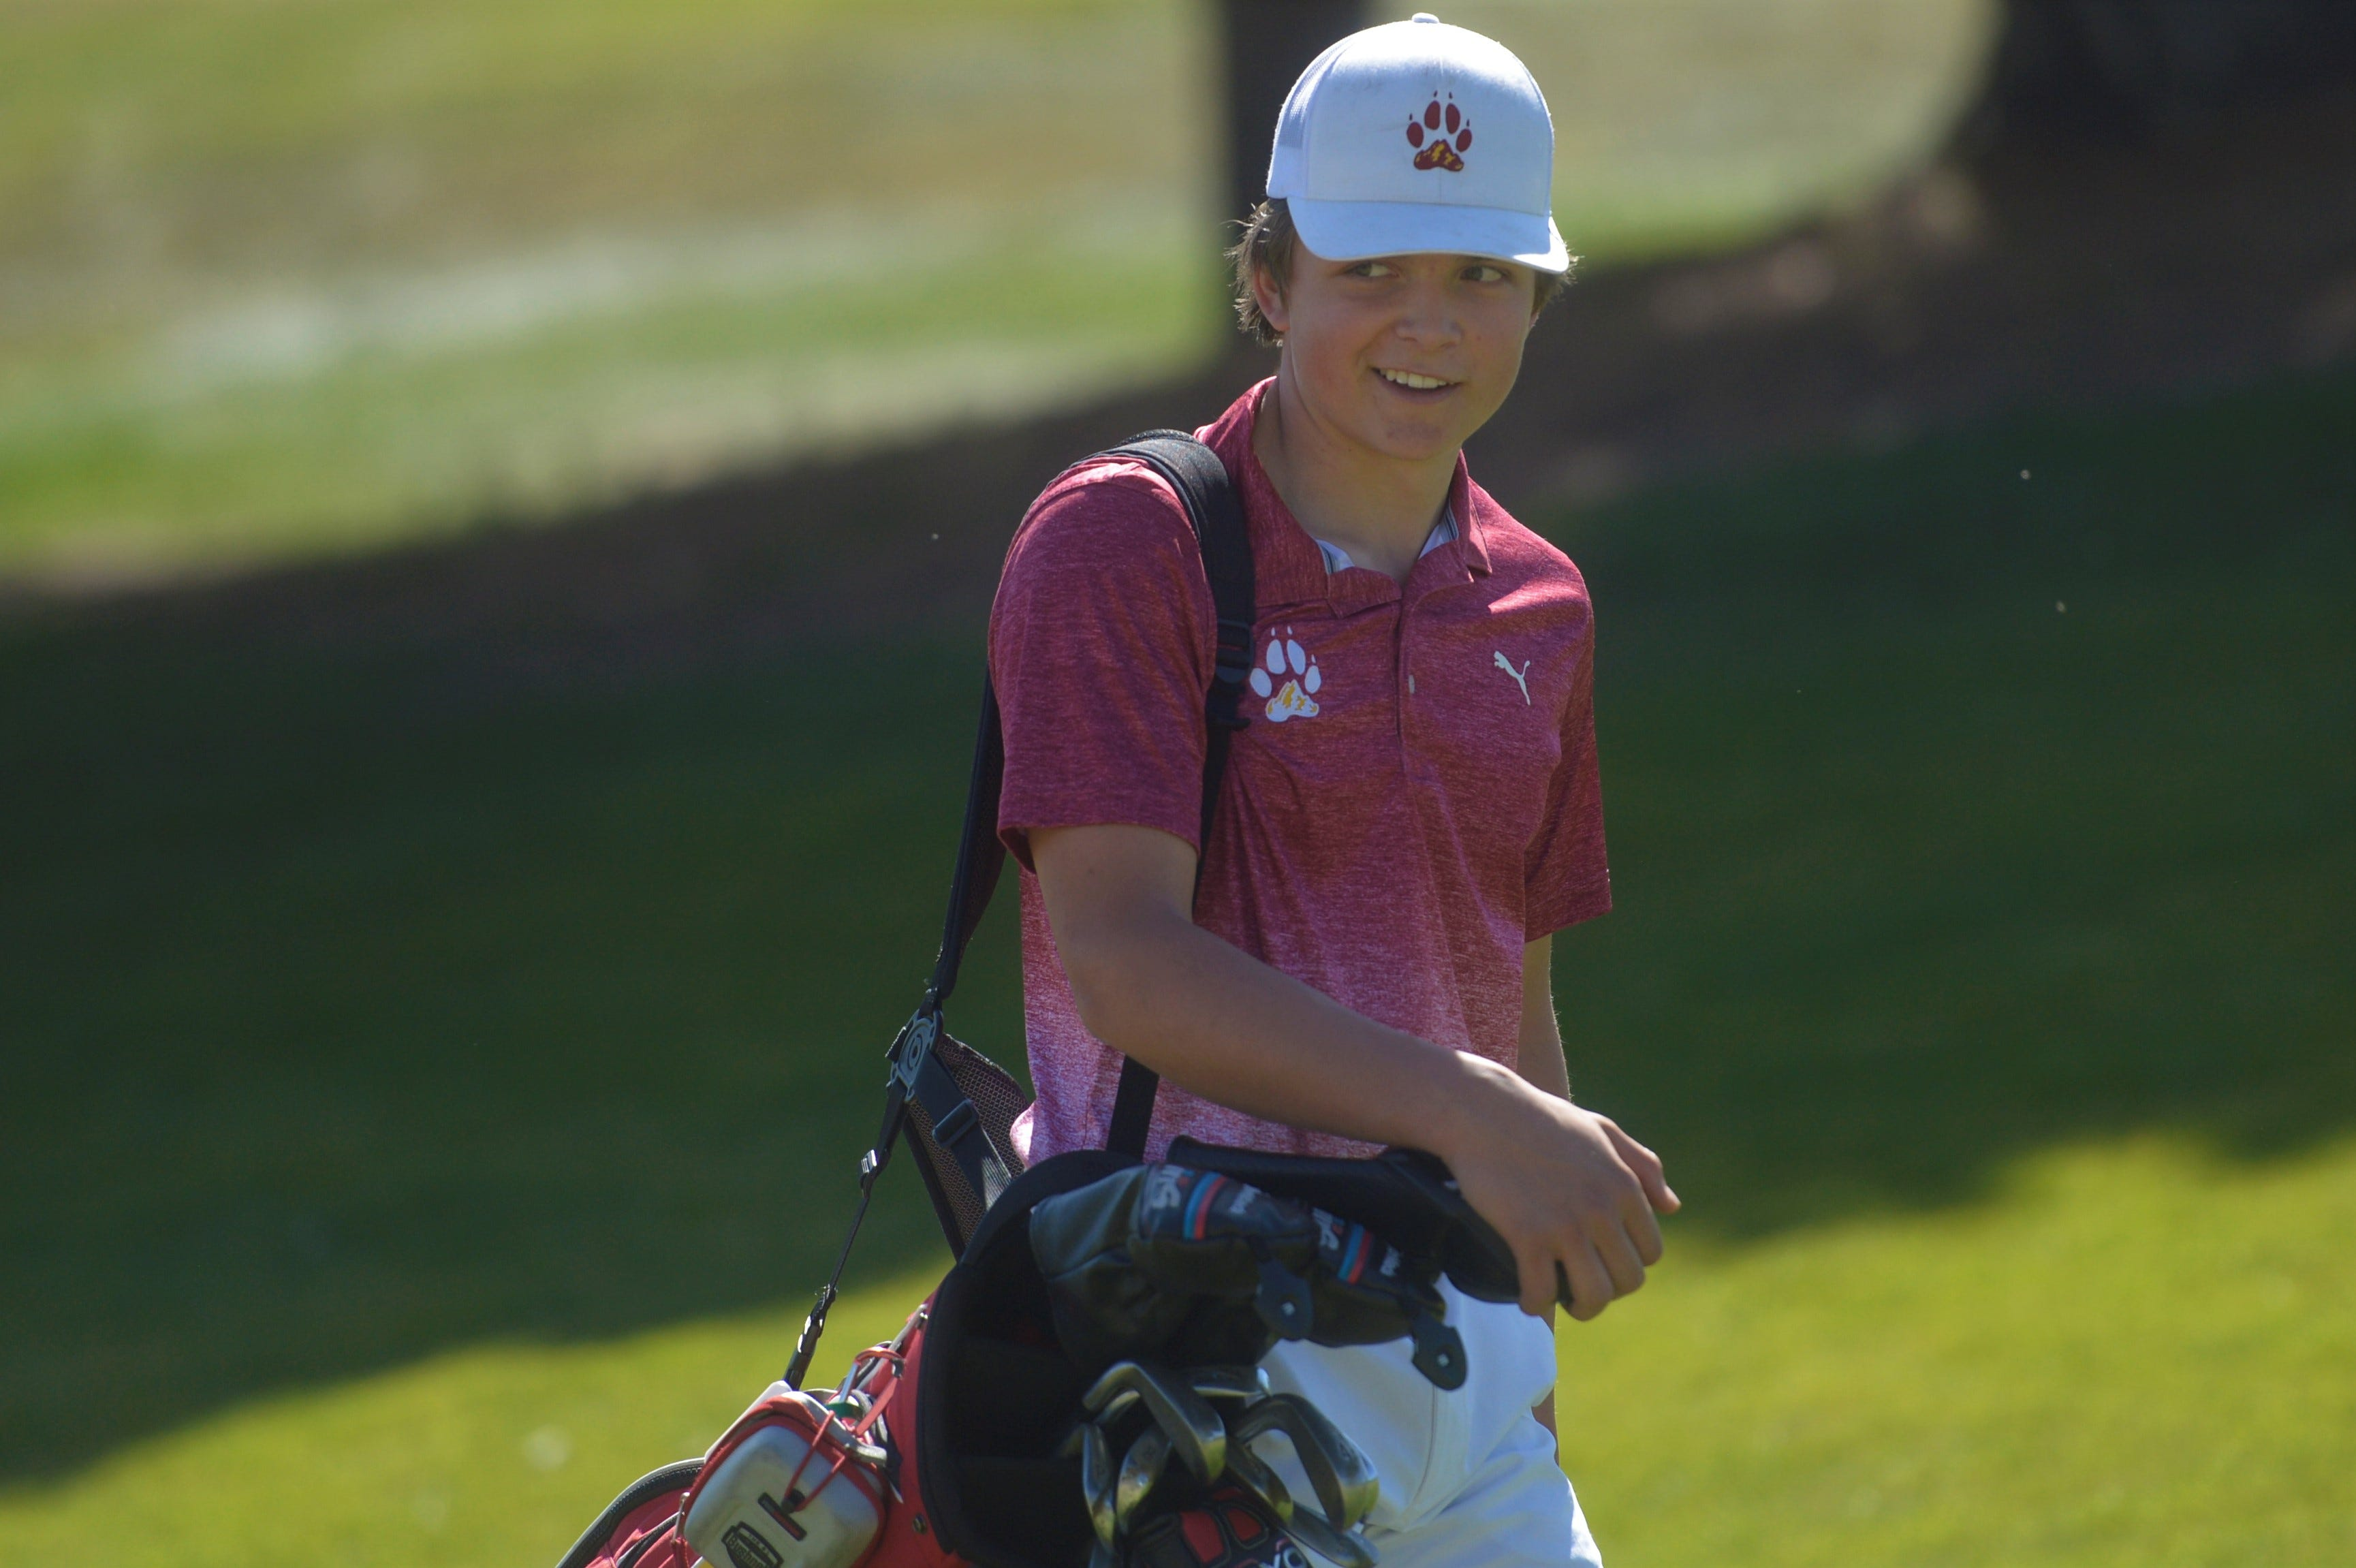 Fort Collins golfers compete on final day of 5A high school state tournament